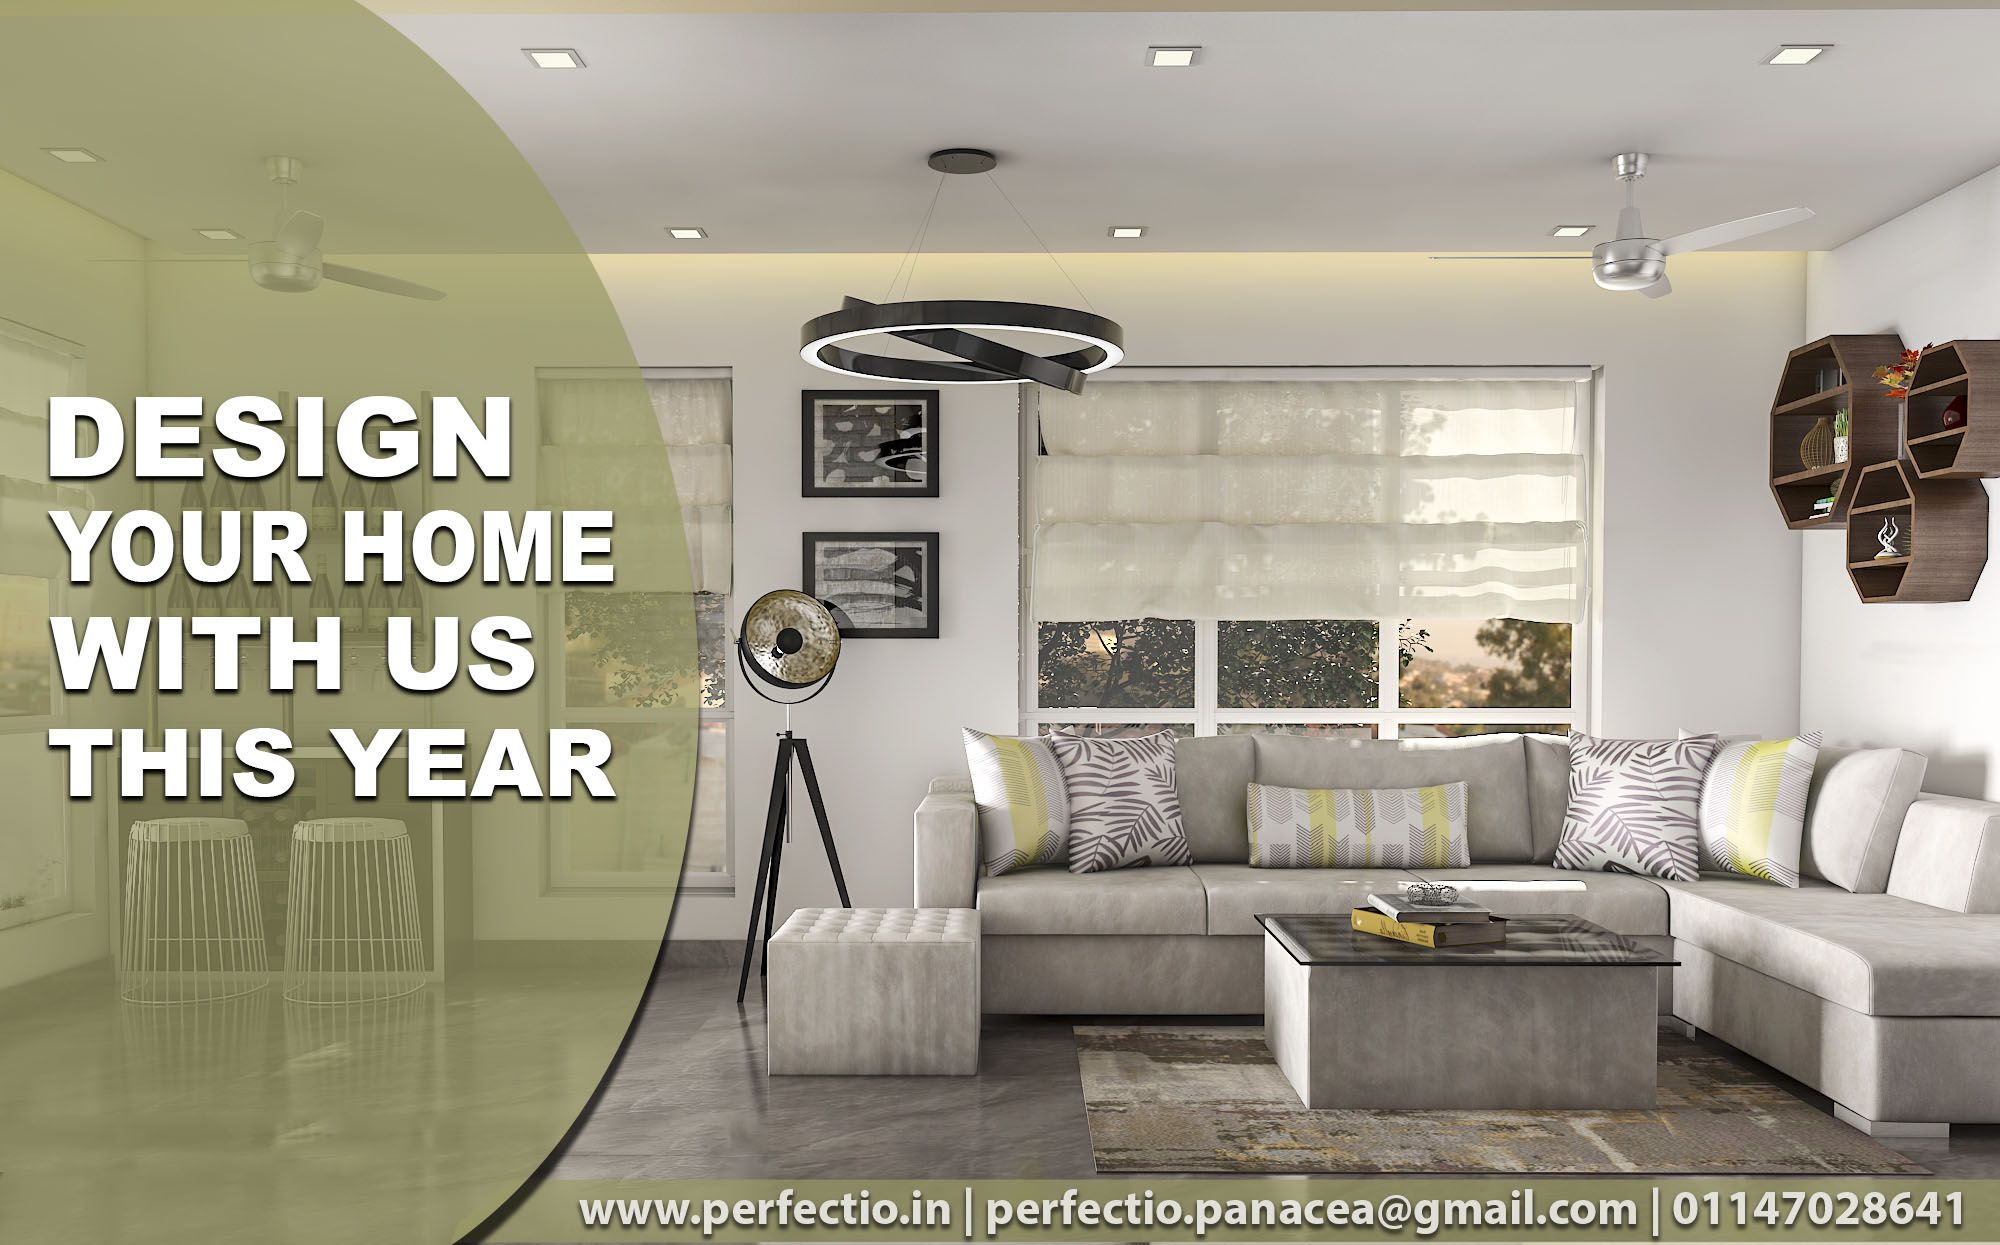 Design Your Home With Us This Year Interior Designers In Delhi